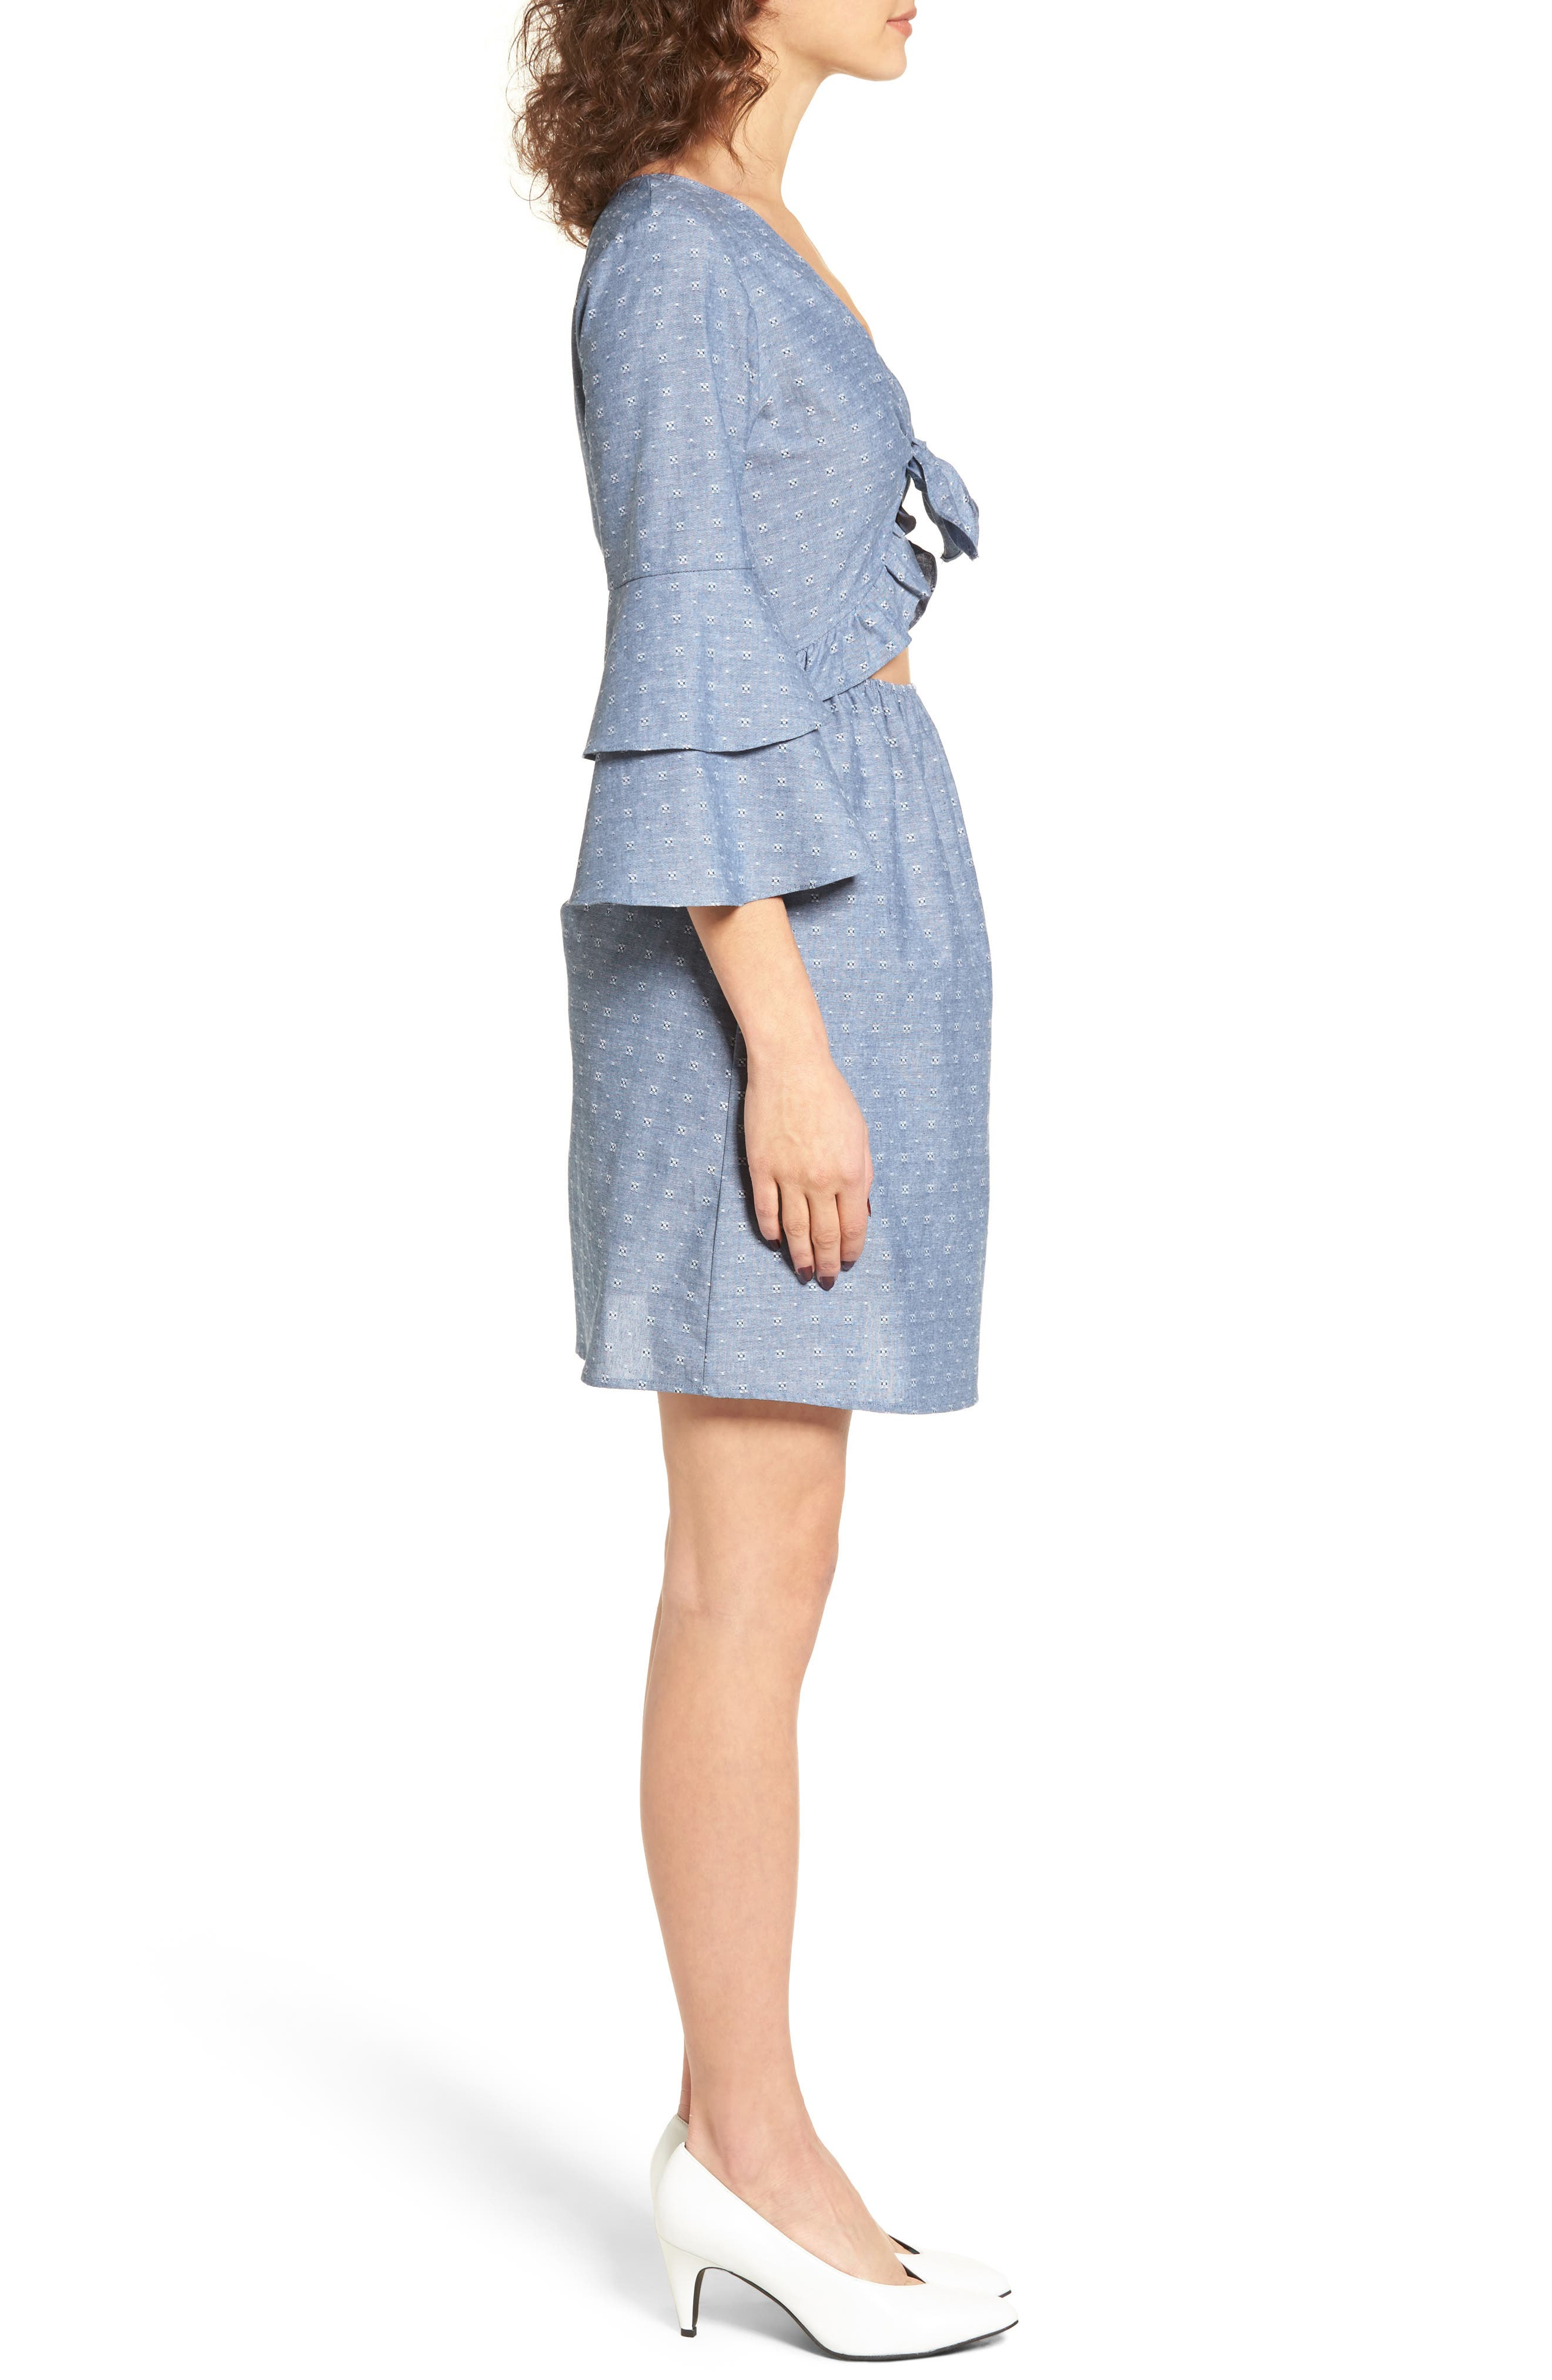 EVERLY,                             Cutout Tiered Sleeve Dress,                             Alternate thumbnail 3, color,                             400